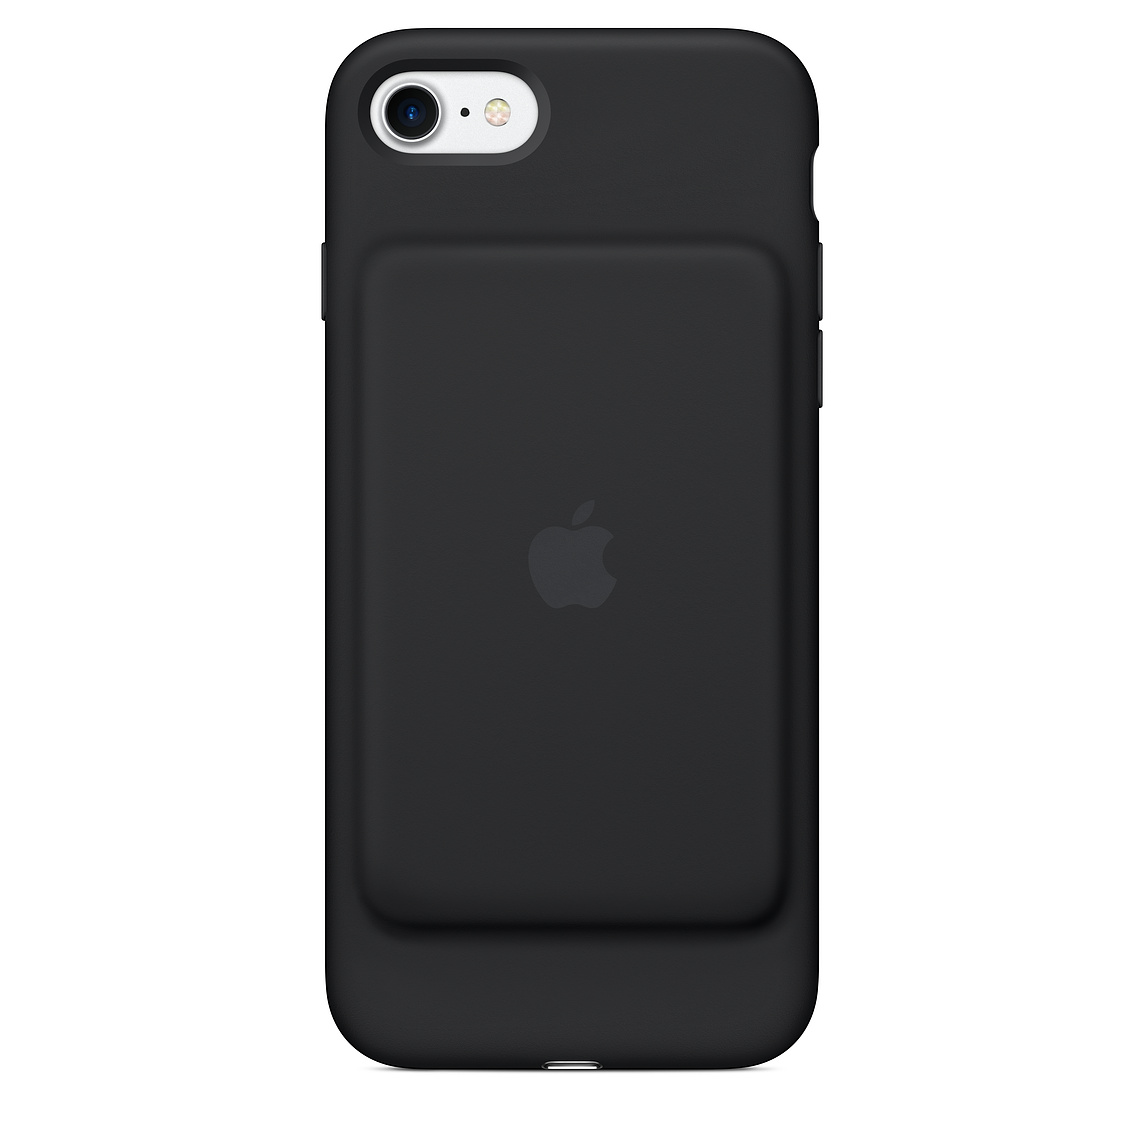 iPhone 7 Smart Battery Case.